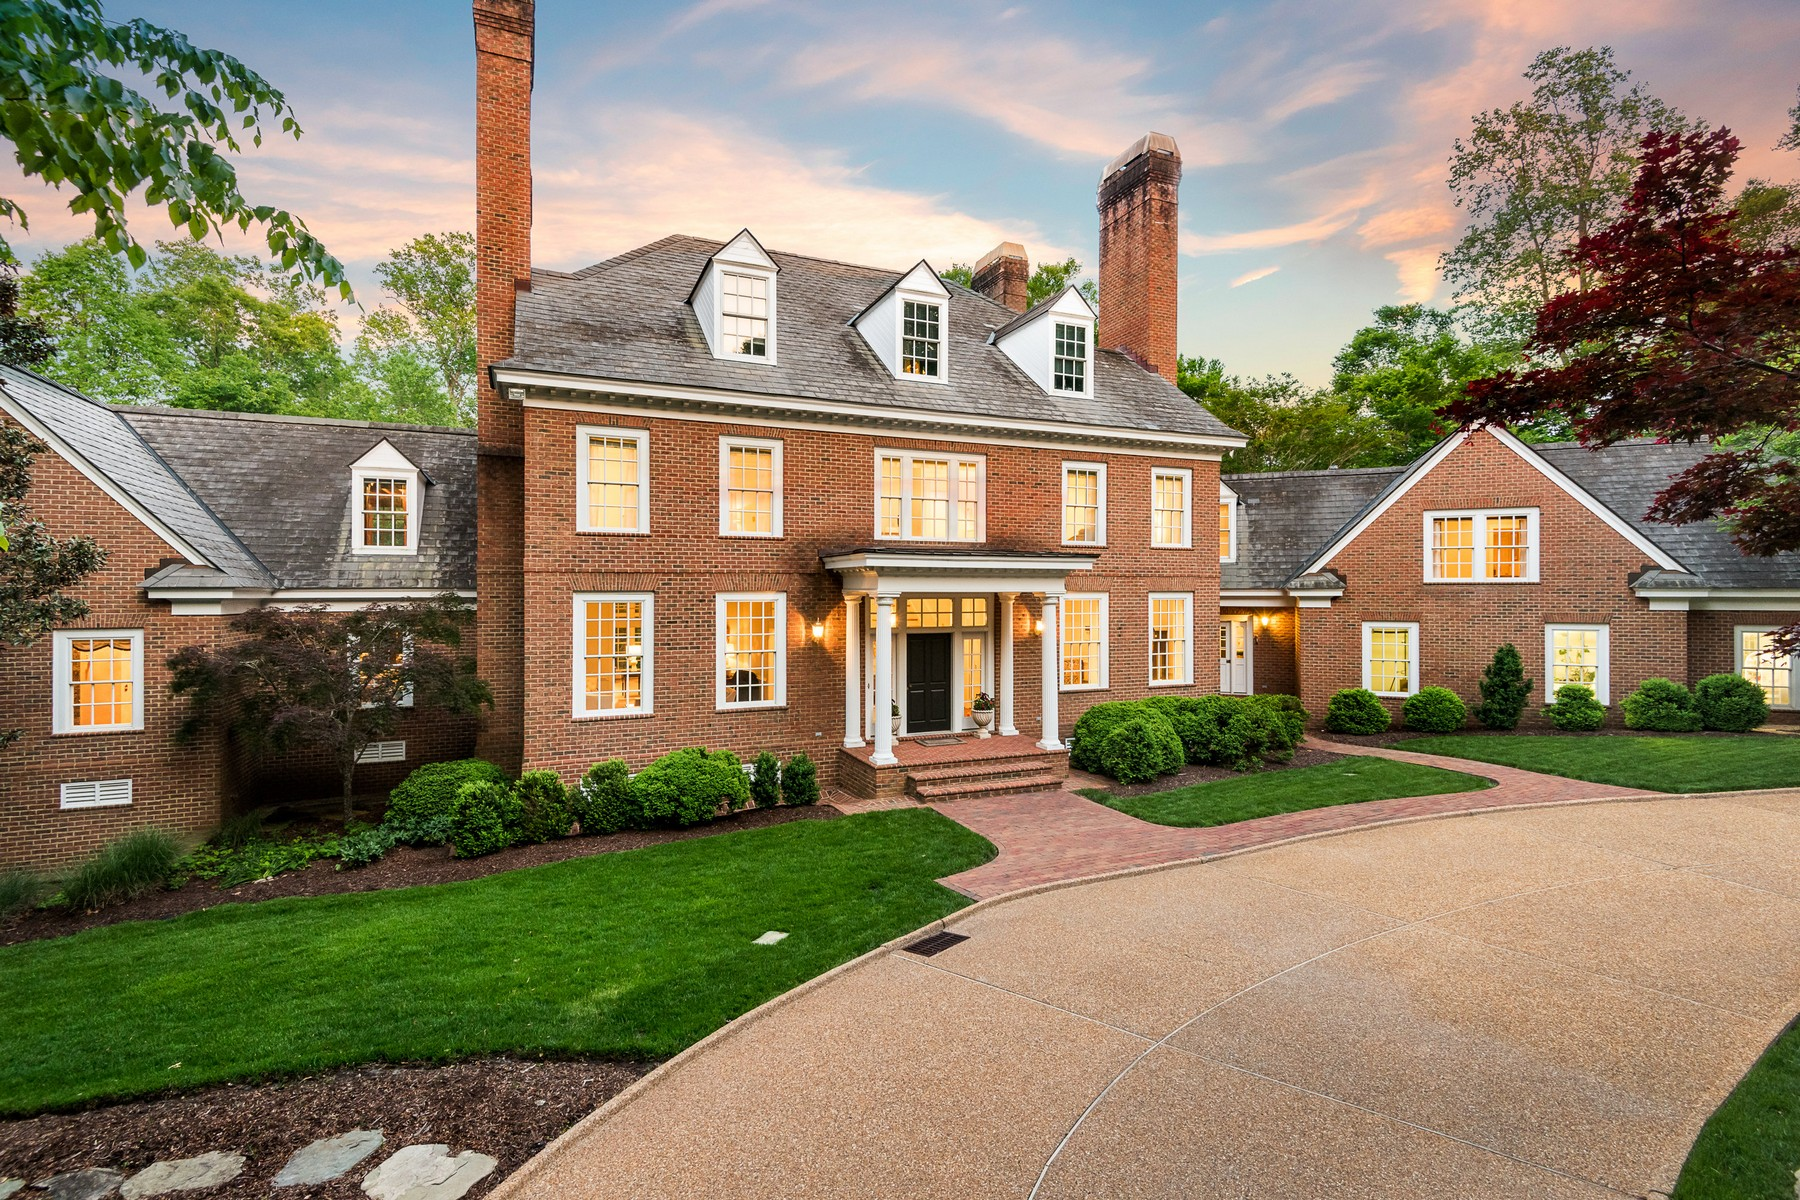 Single Family Homes for Active at 800 South England Circle, Williamsburg 800 South England Circle Williamsburg, Virginia 23185 United States